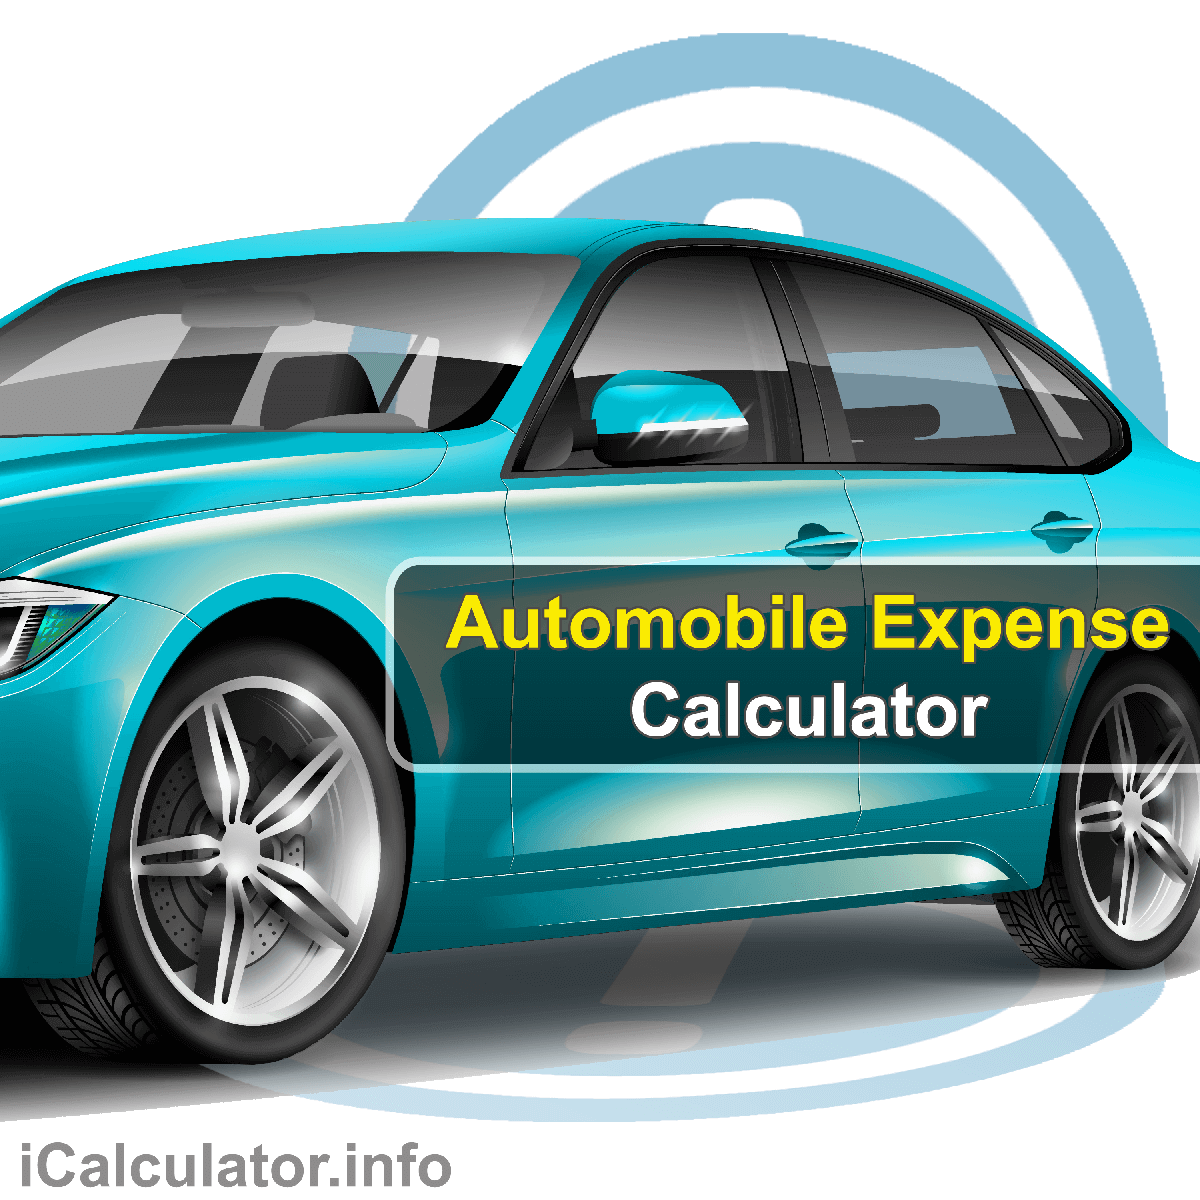 Automobile Expense Calculator. This image provides details of how to calculate the expense of using and maintaining a car using a calculator and notepad. By using the car finance formula, the Automobile Expense Calculator provides a true calculation of the the running cost of your automobile on an anual and monthly basis.